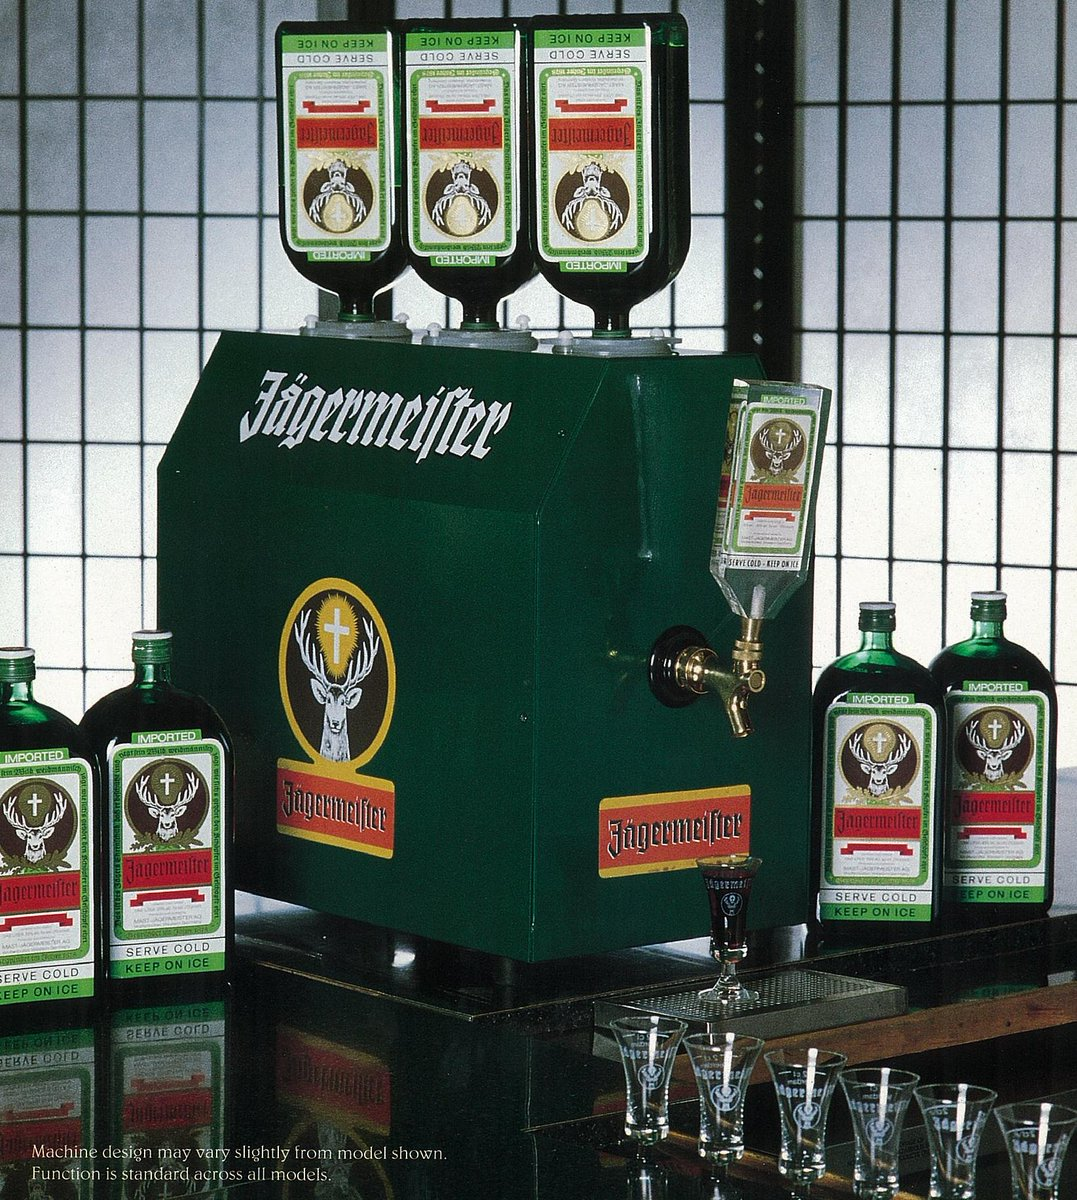 Jägermeister Usa On Twitter Old School Jager Tap Machine Tbt Http T Co Lzlnch3ahl